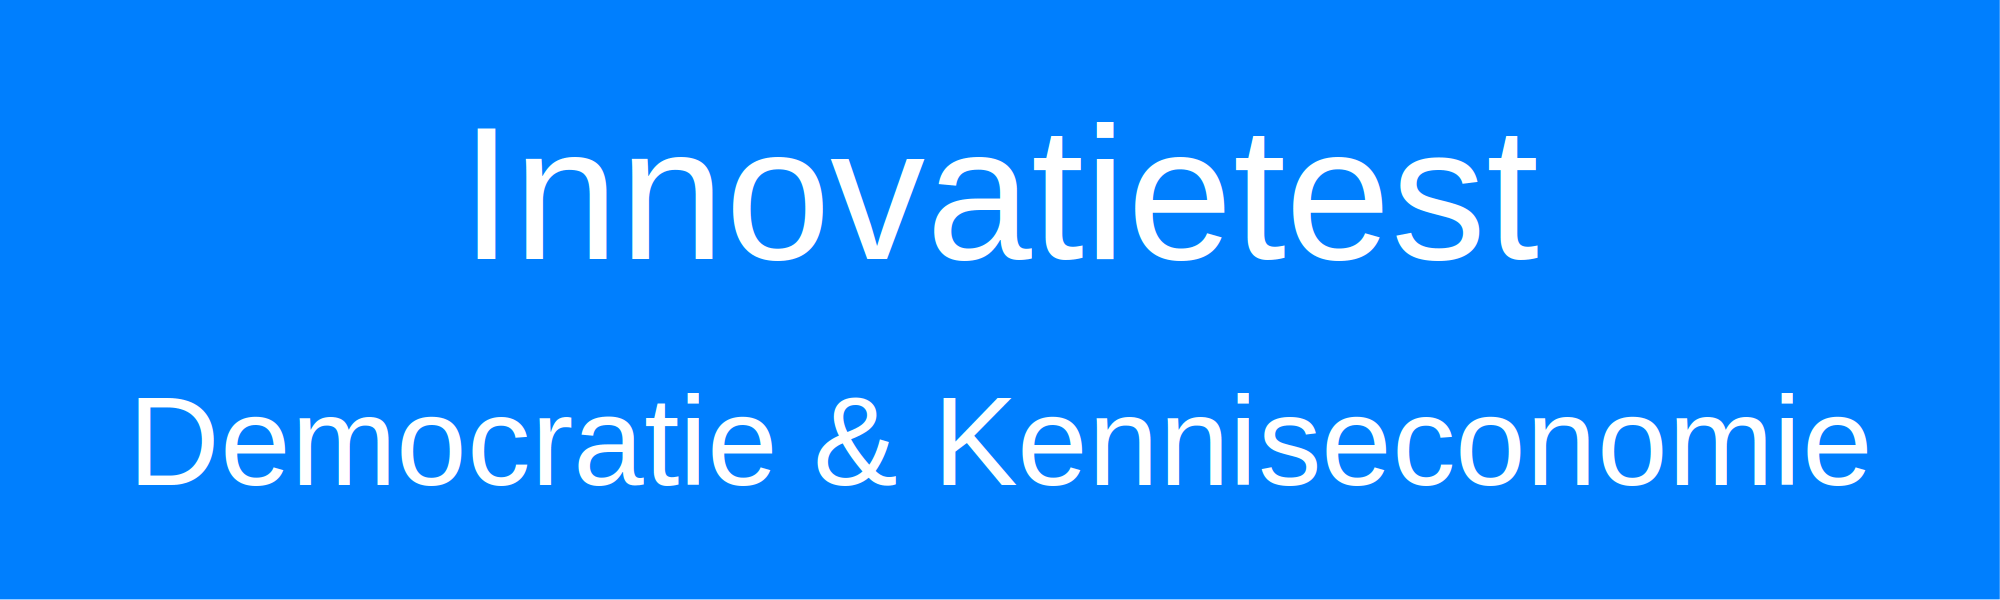 innovatietest democratie kenniseconomie